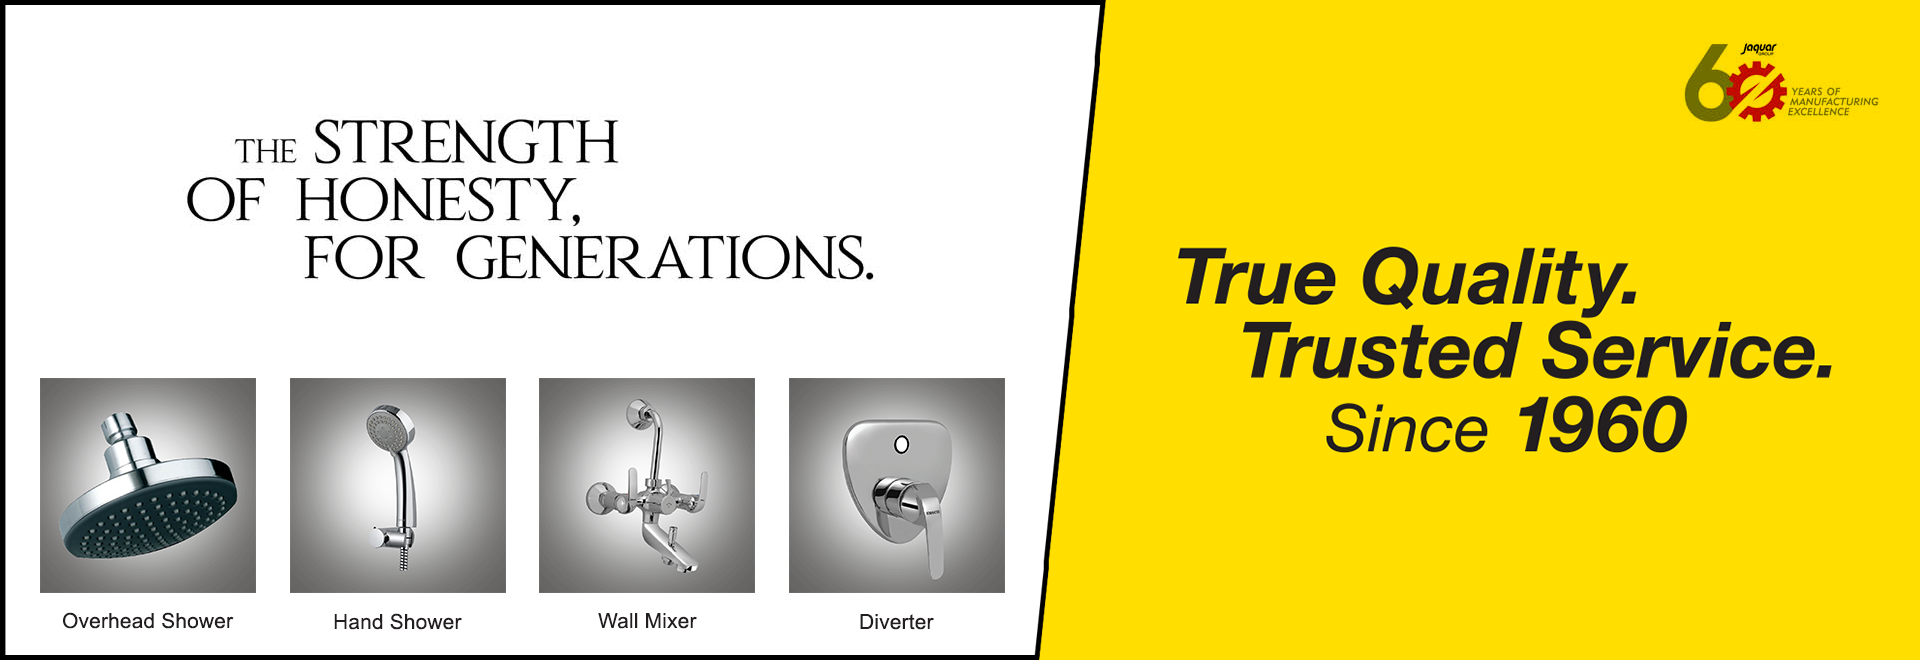 Essco showers, hand showers, wall mixers are the best in its category